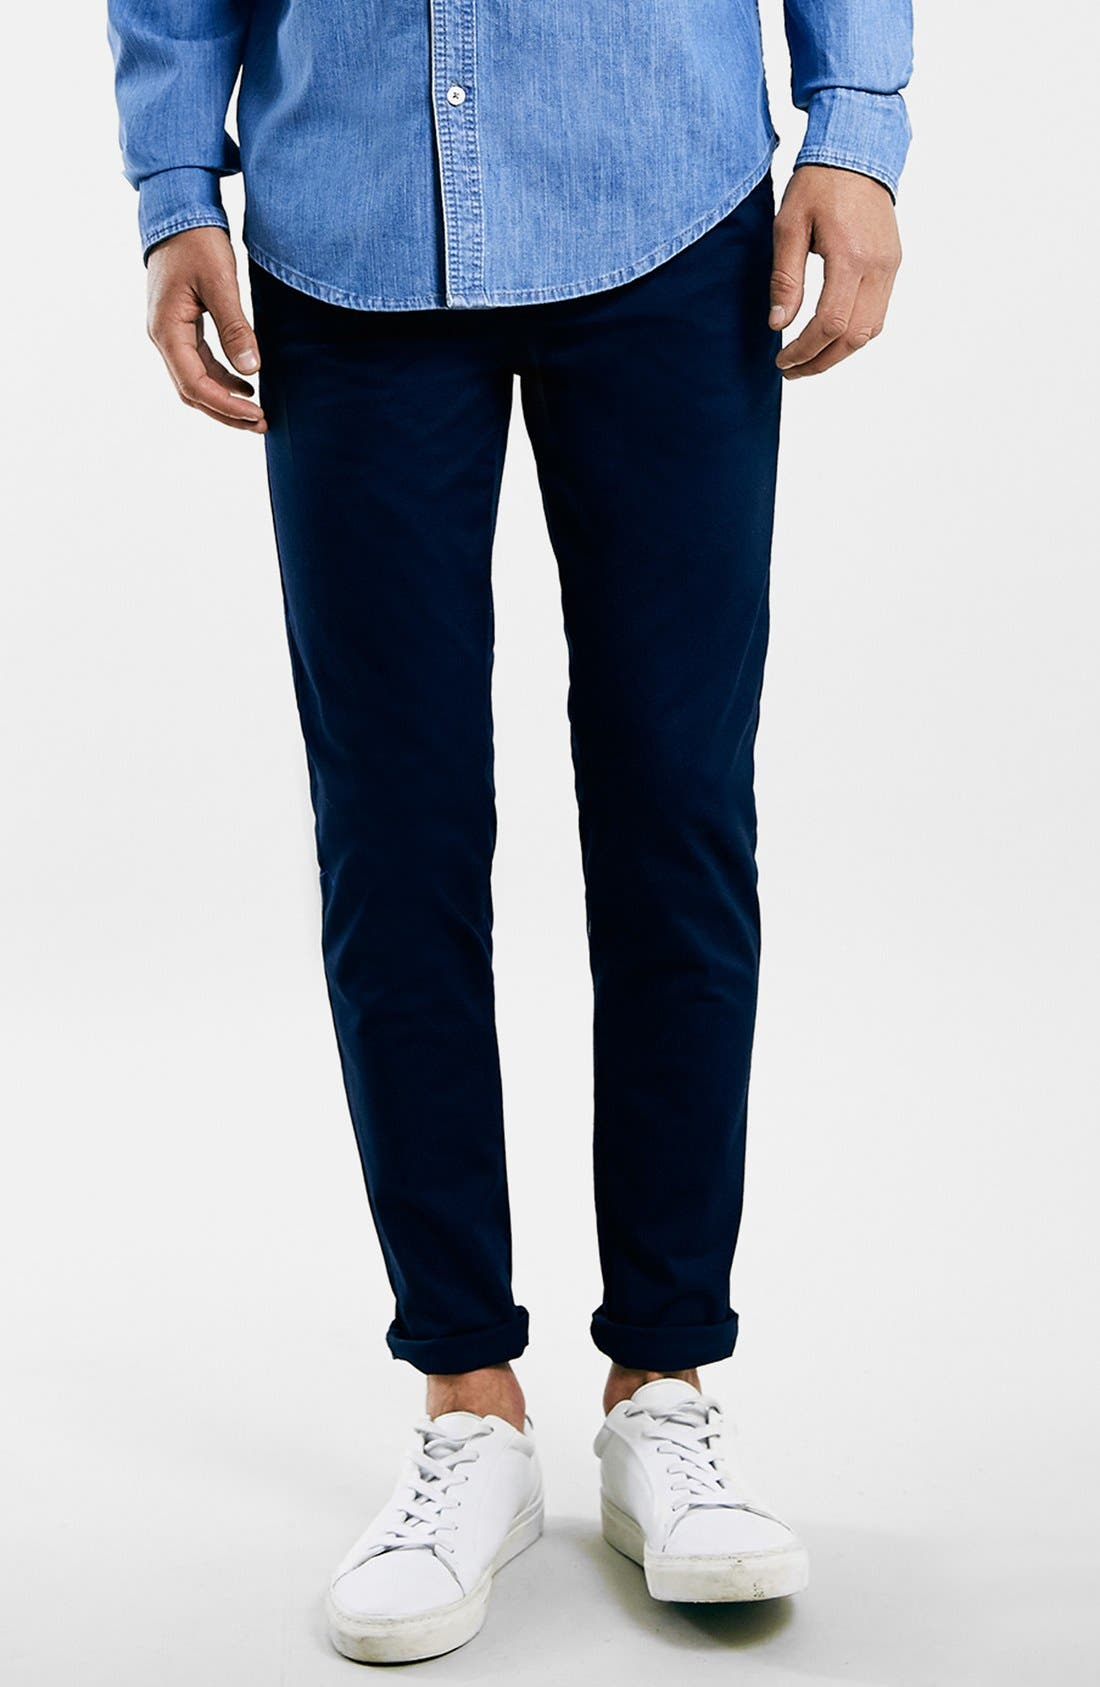 Stretch Skinny Fit Chinos,                         Main,                         color, DARK BLUE